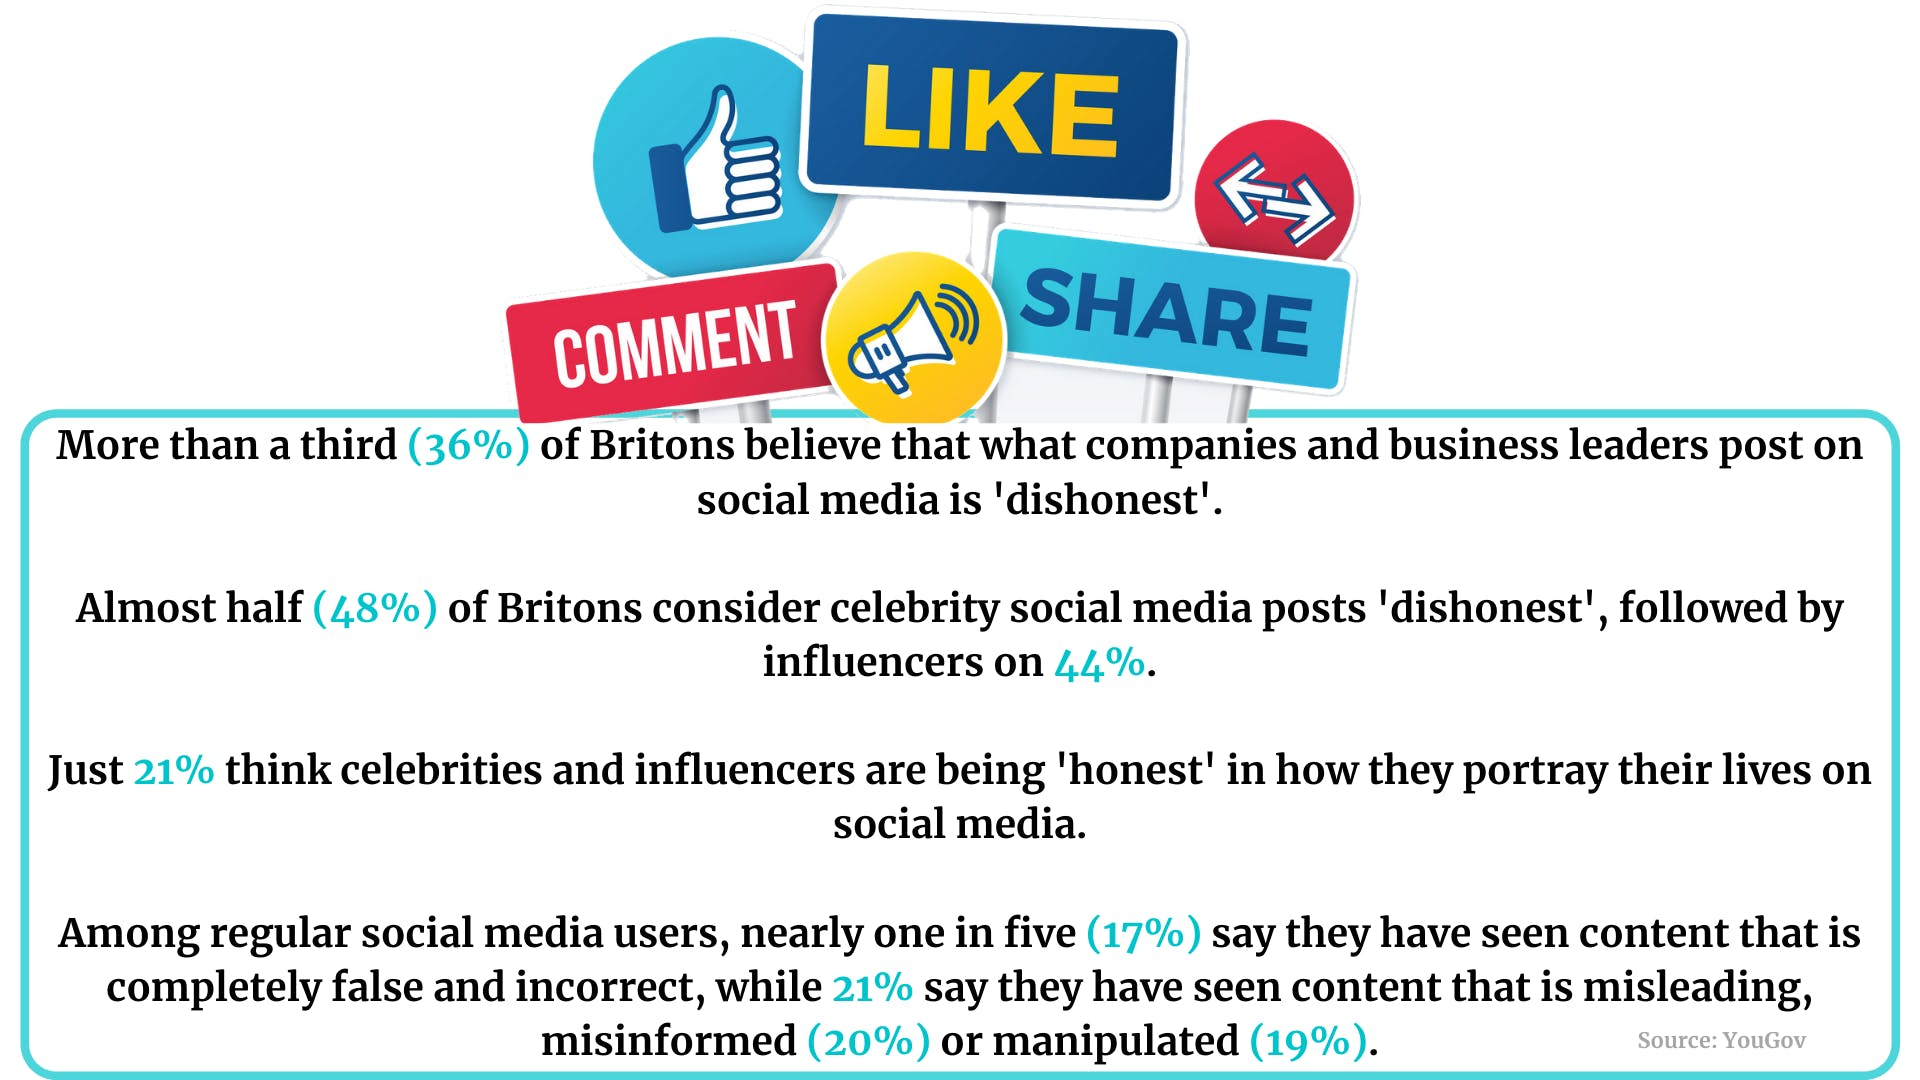 Christmas ad spend, consumer confidence, 'dishonest' social posts: 5 killer stats to start your week